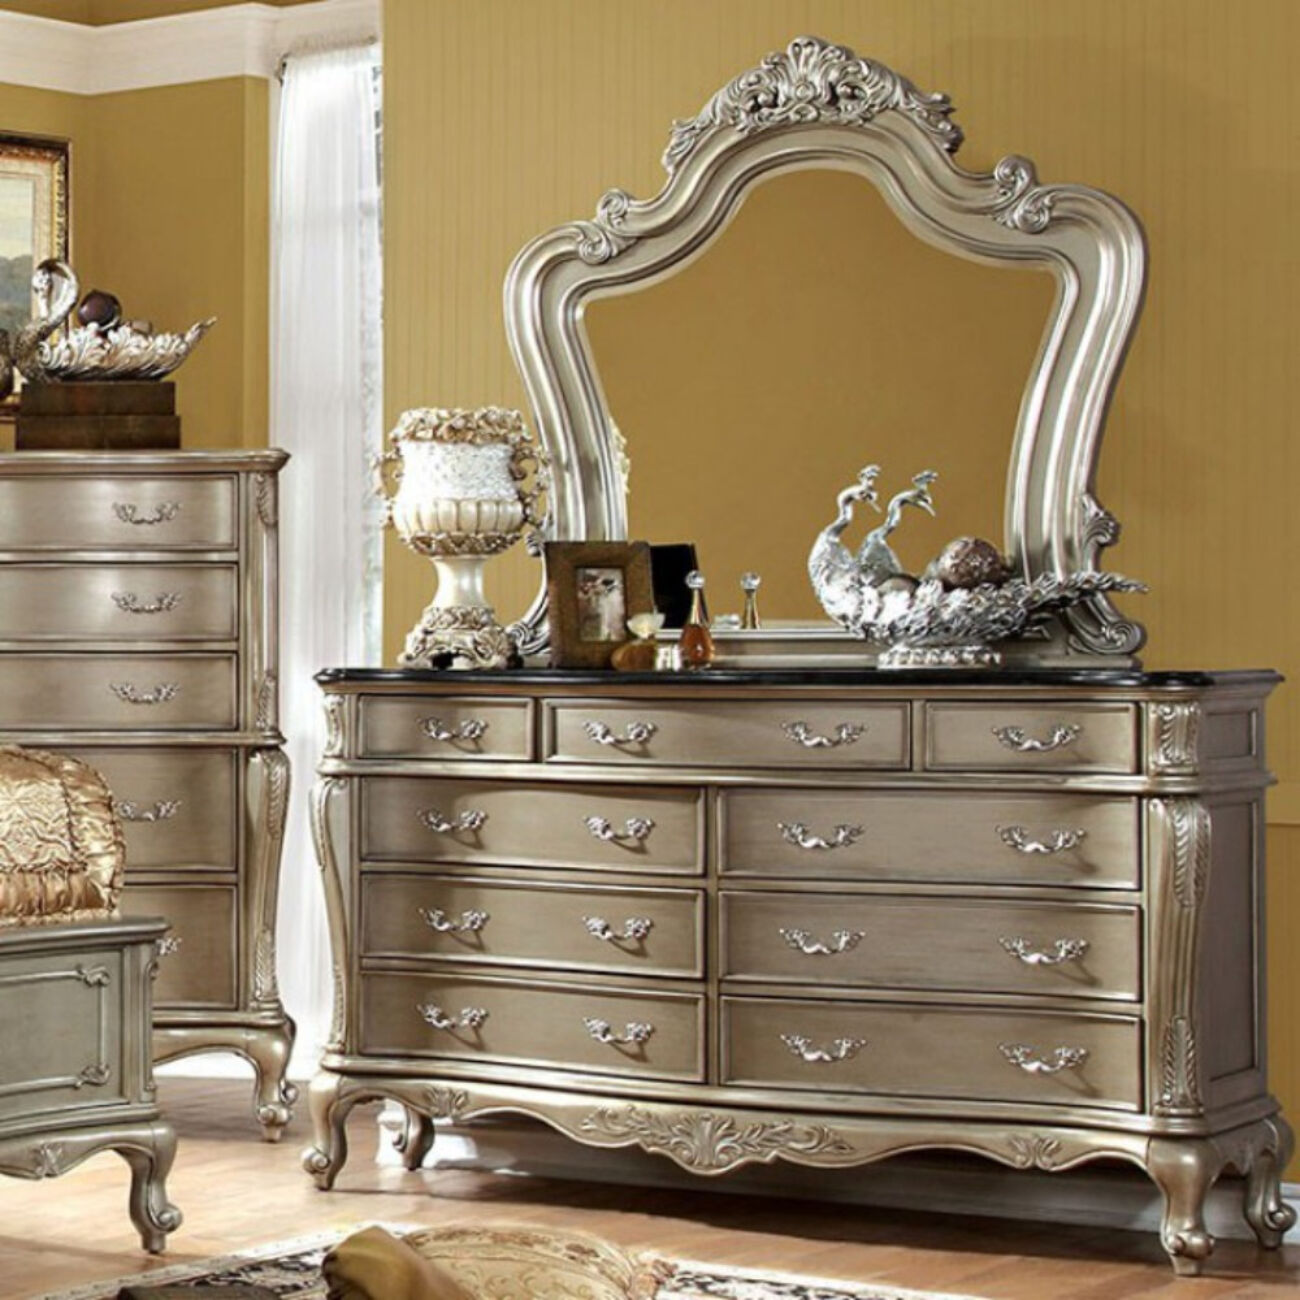 Opulent Lush Luxurious Designer Wooden Dresser, Gold Design